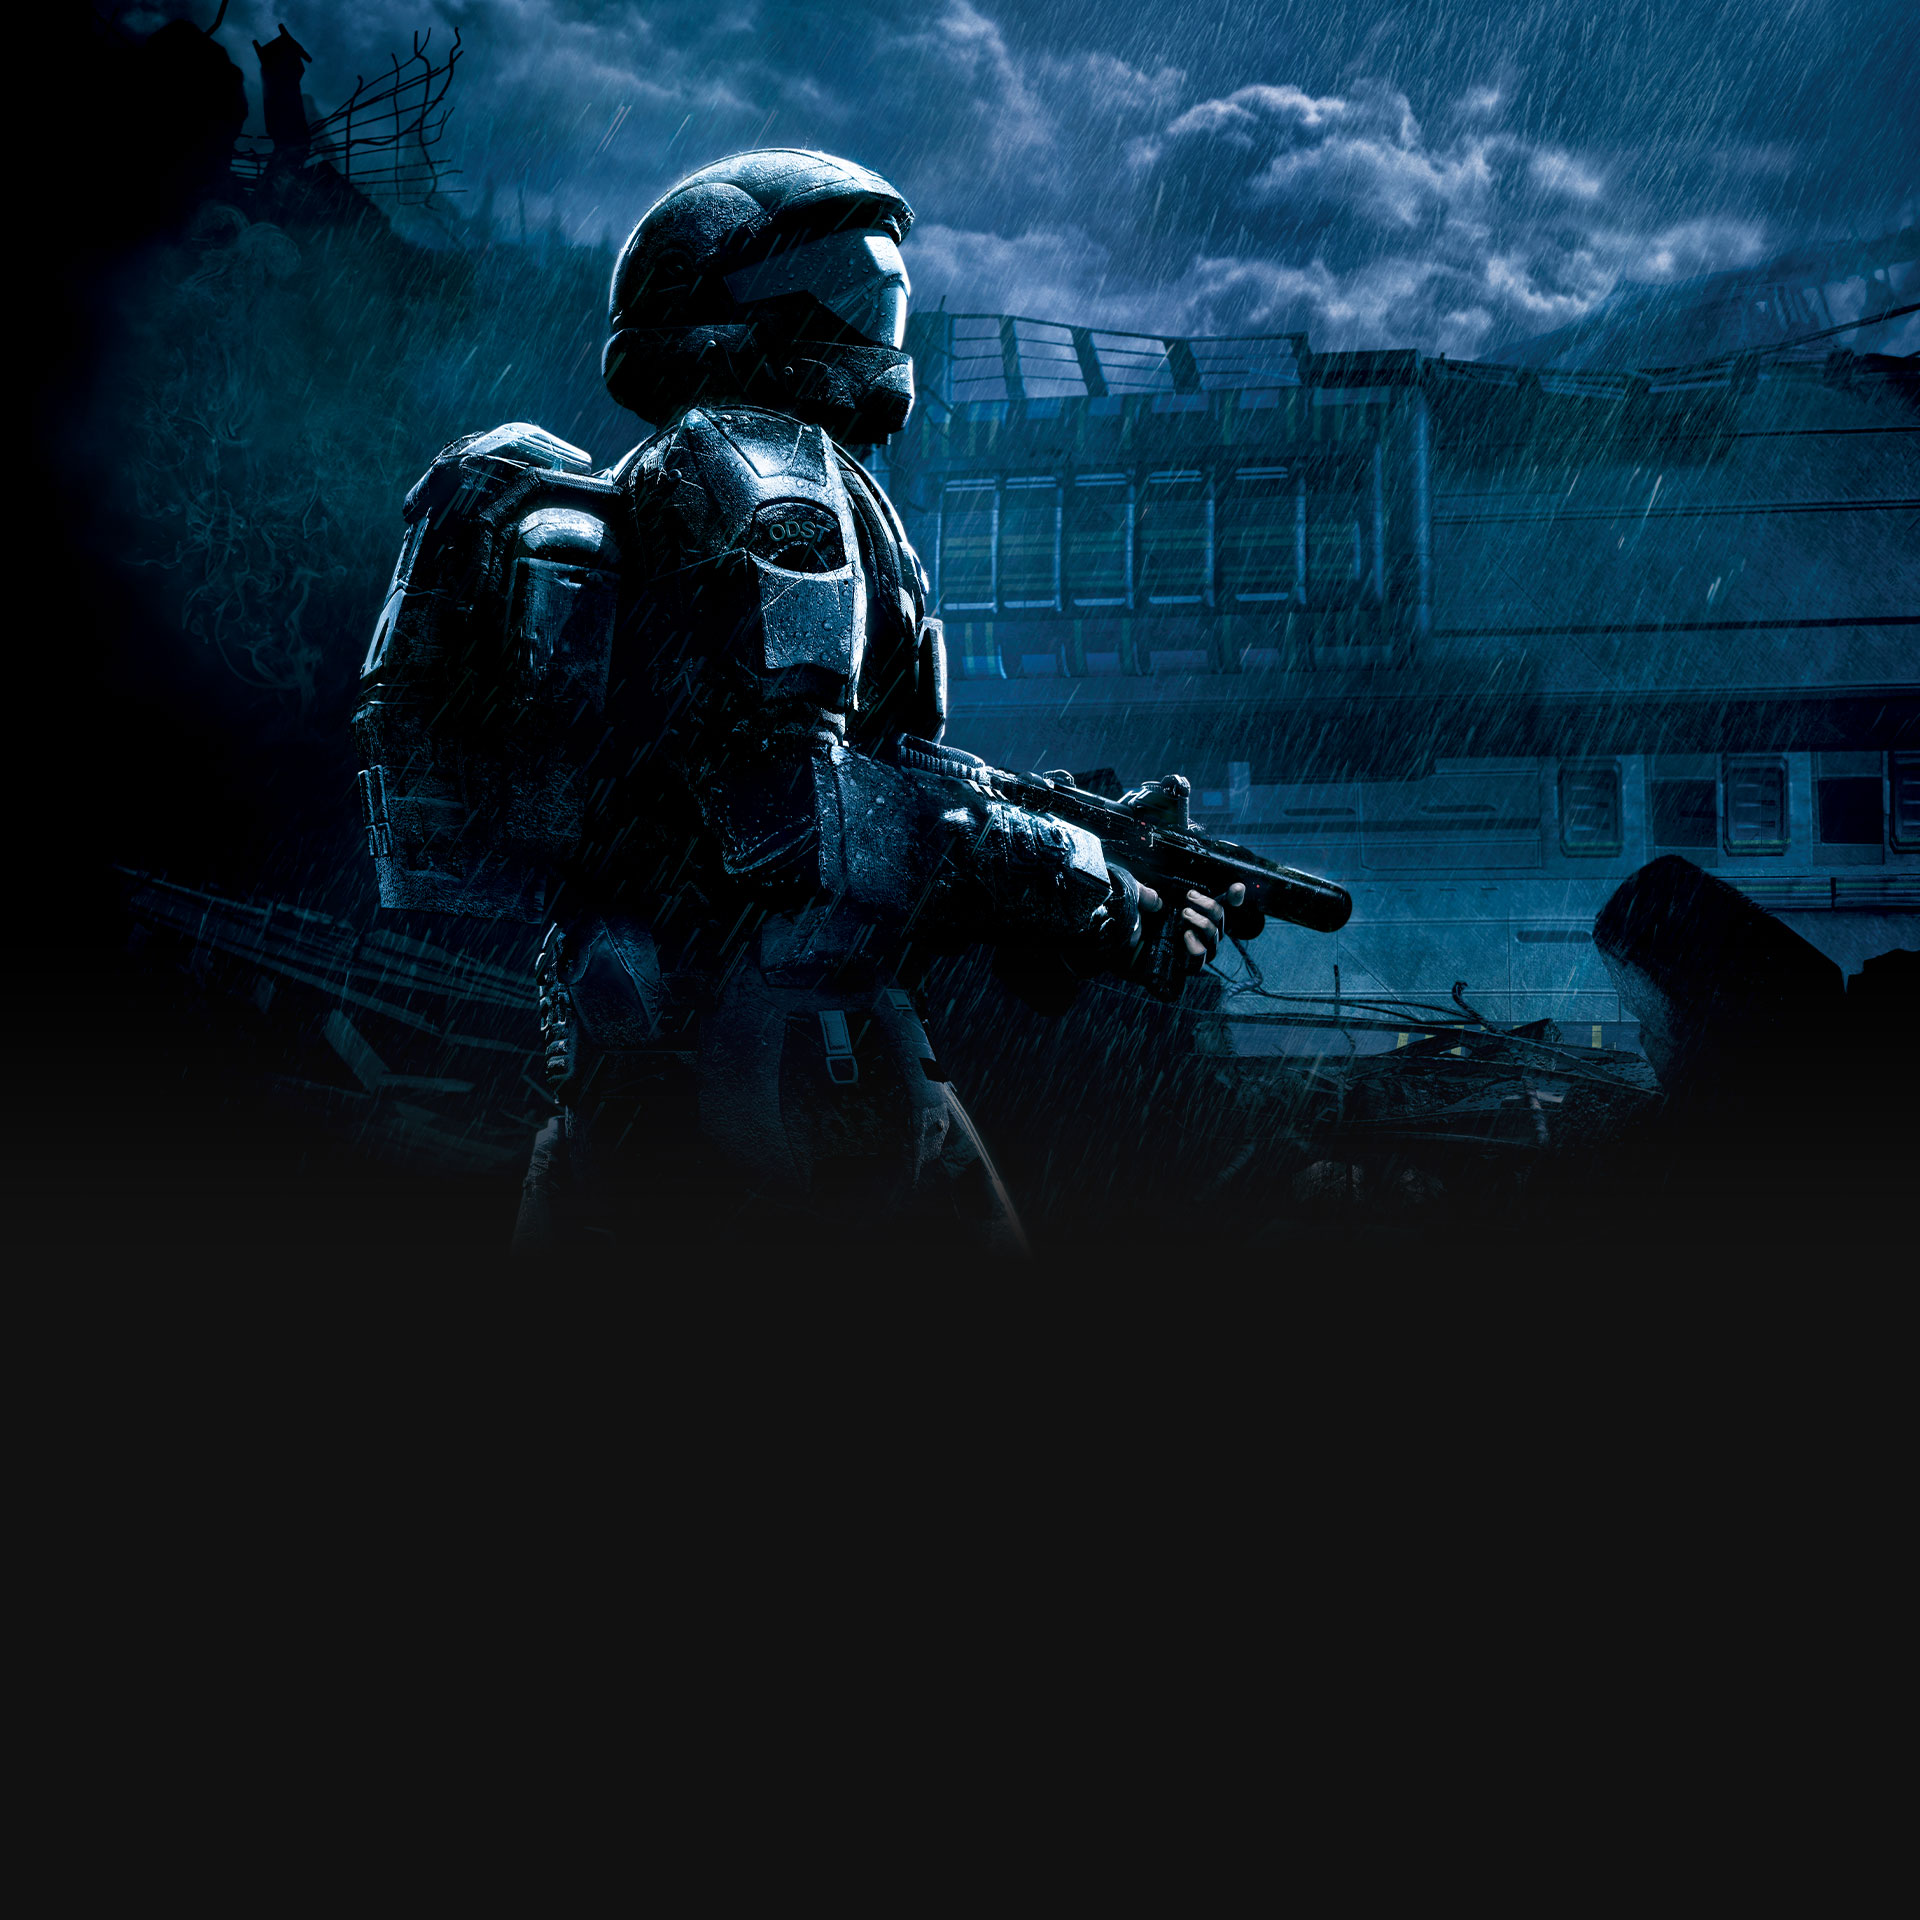 Halo 3: ODST, An ODST trooper holds a smg in the rain on New Mombasa